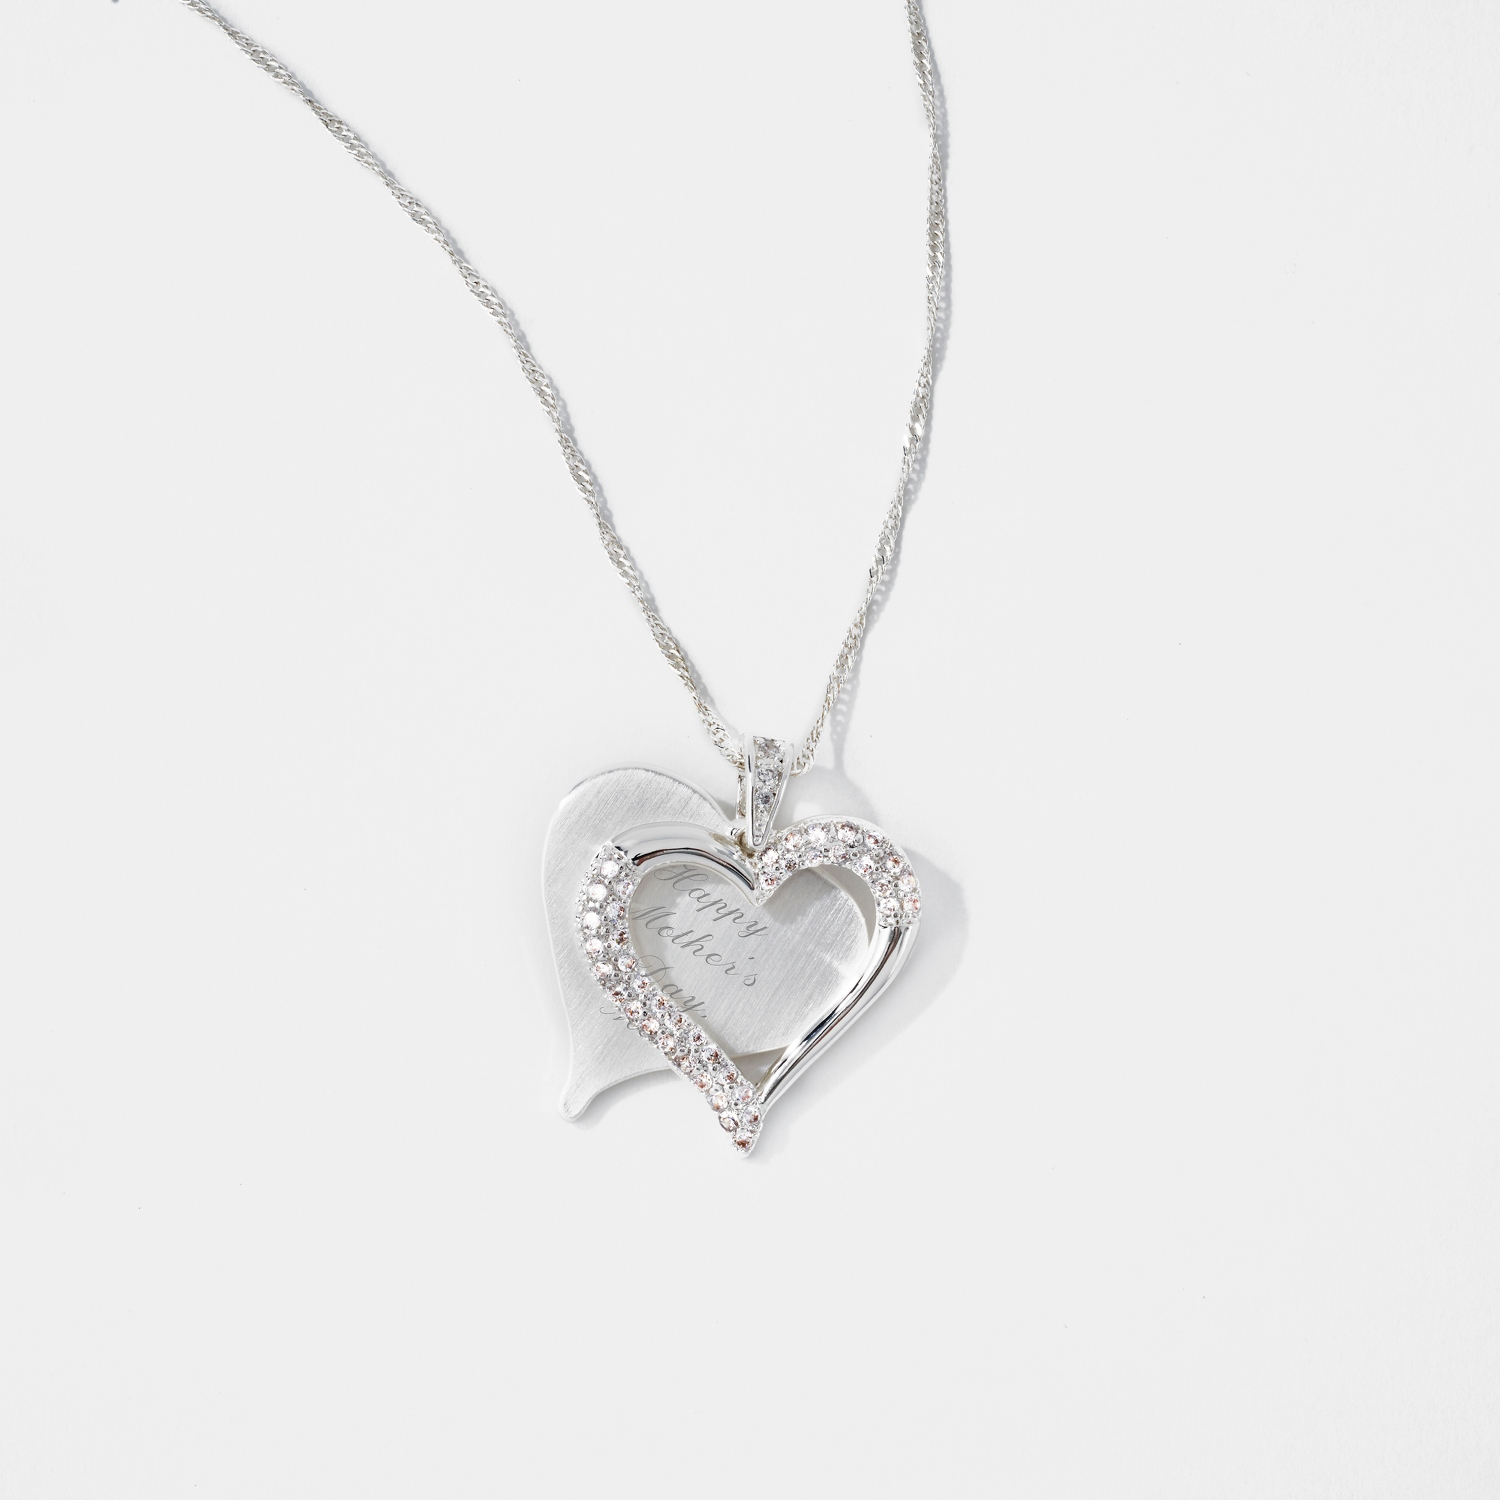 silver necklace accessories heart melissa jewellery odabash shop pendant